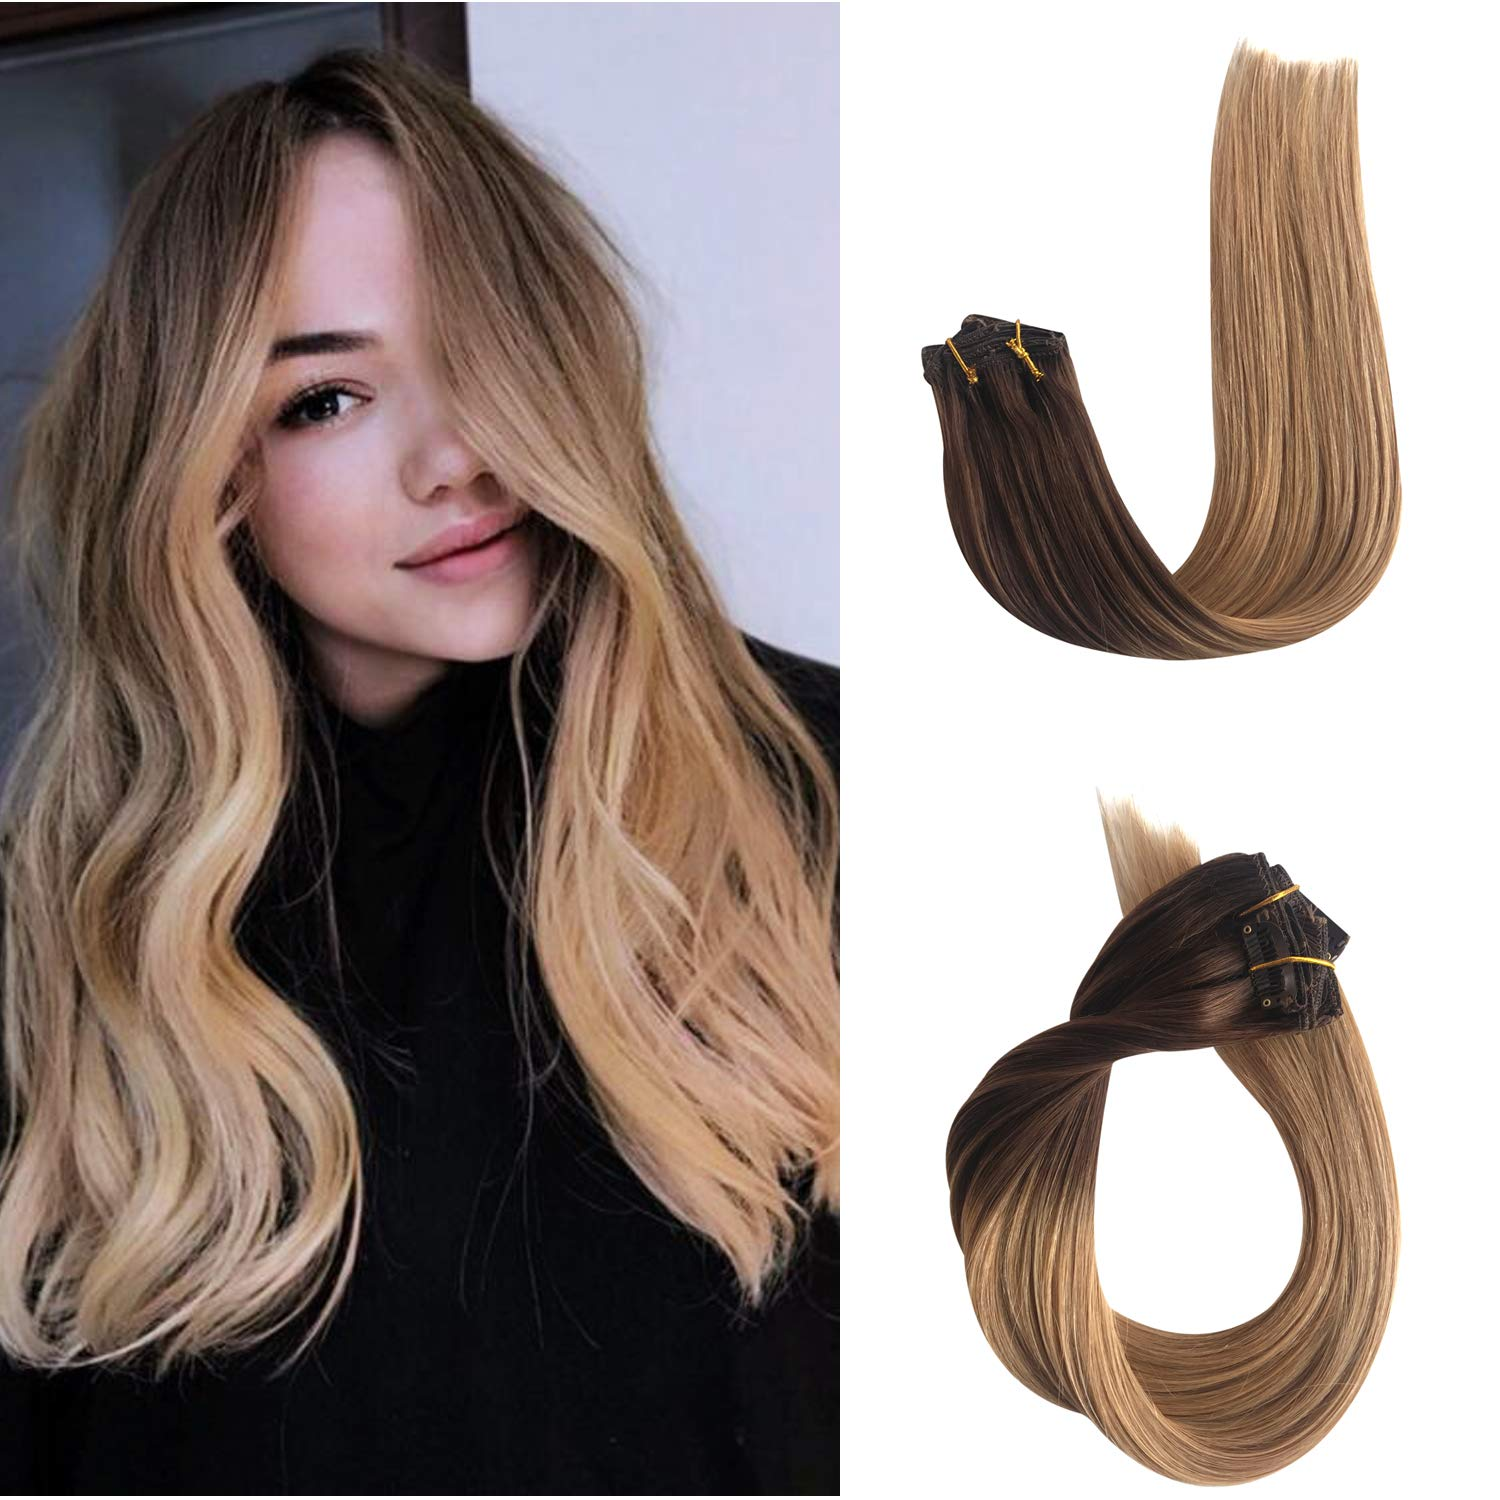 Ombre Clip in Human Hair Extensions Real Remy Hair Extensions Clip on for Black/White Women Medium Brown to Strawberry Blonde Double Weft Soft Silky Straight Glueless Natural 70g 7pcs 16 Clips 15in